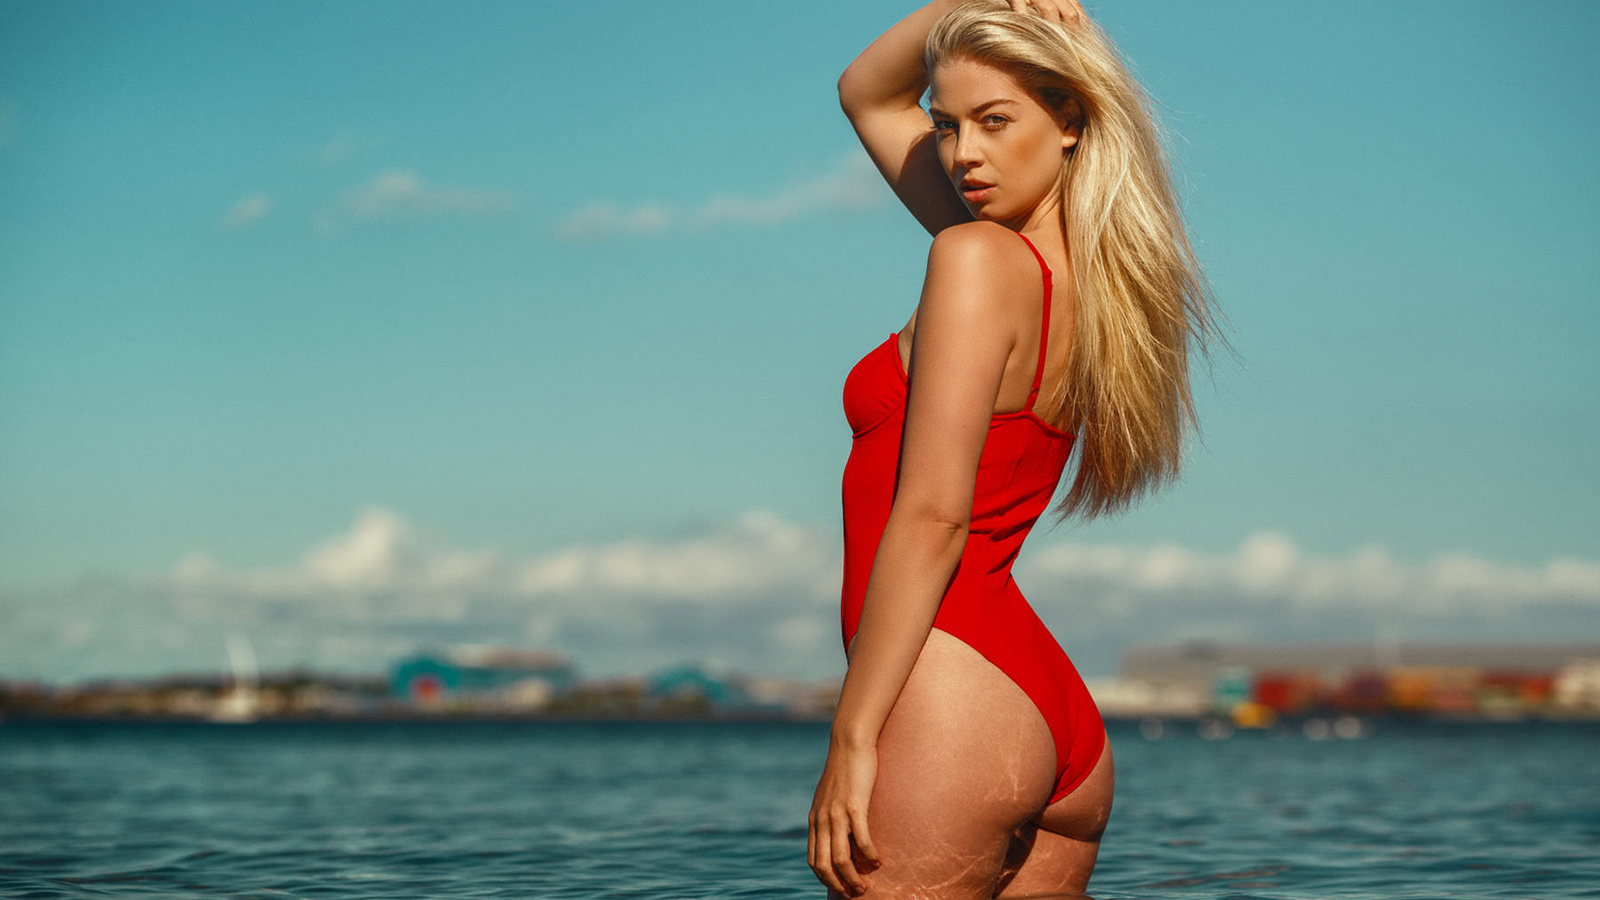 women, blonde, ass, sea, women outdoors, brunette, one-piece swimsuit, red swimsuit, looking at viewer, sky, kenneth lundgreen